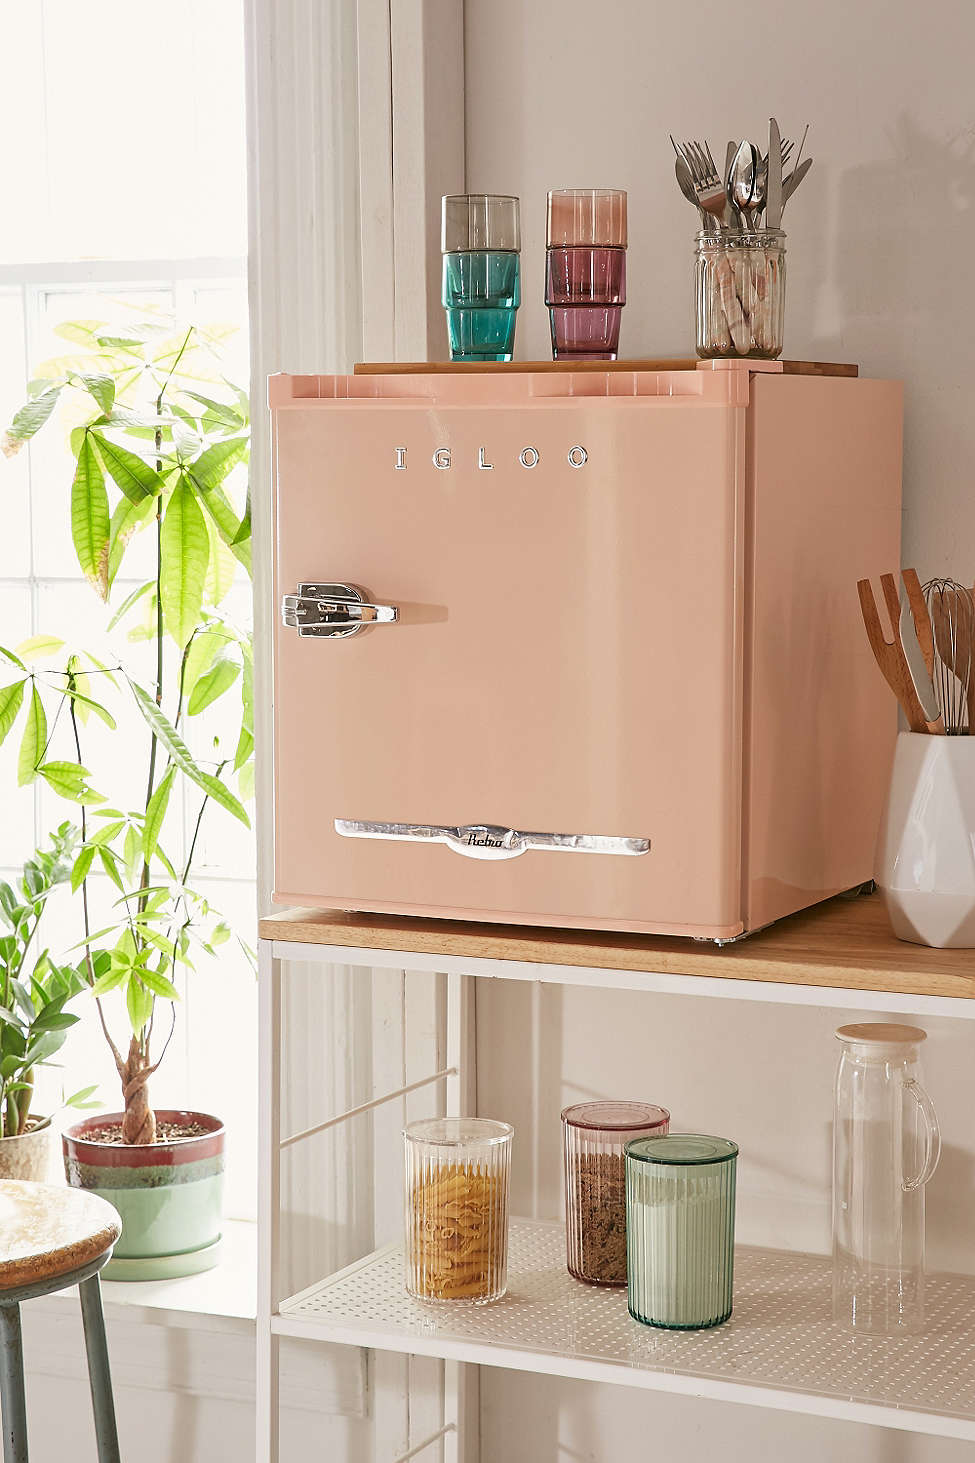 Top 10 Candy-Colored Refrigerators for the Coolest-Looking ...